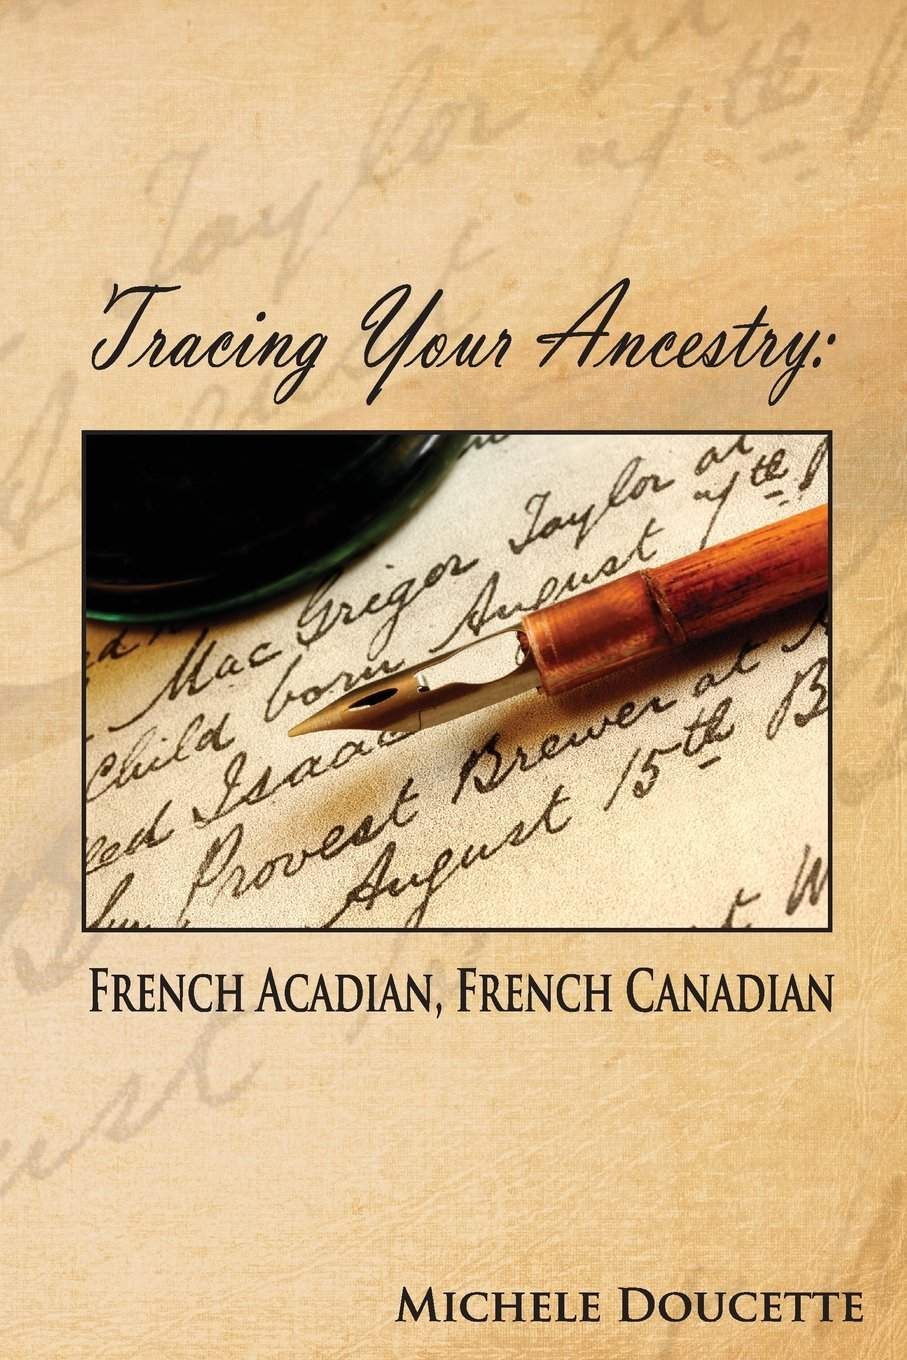 Tracing Your Ancestry: French Acadian, French Canadian: Michele Doucette:  9781935786696: Amazon.com: Books